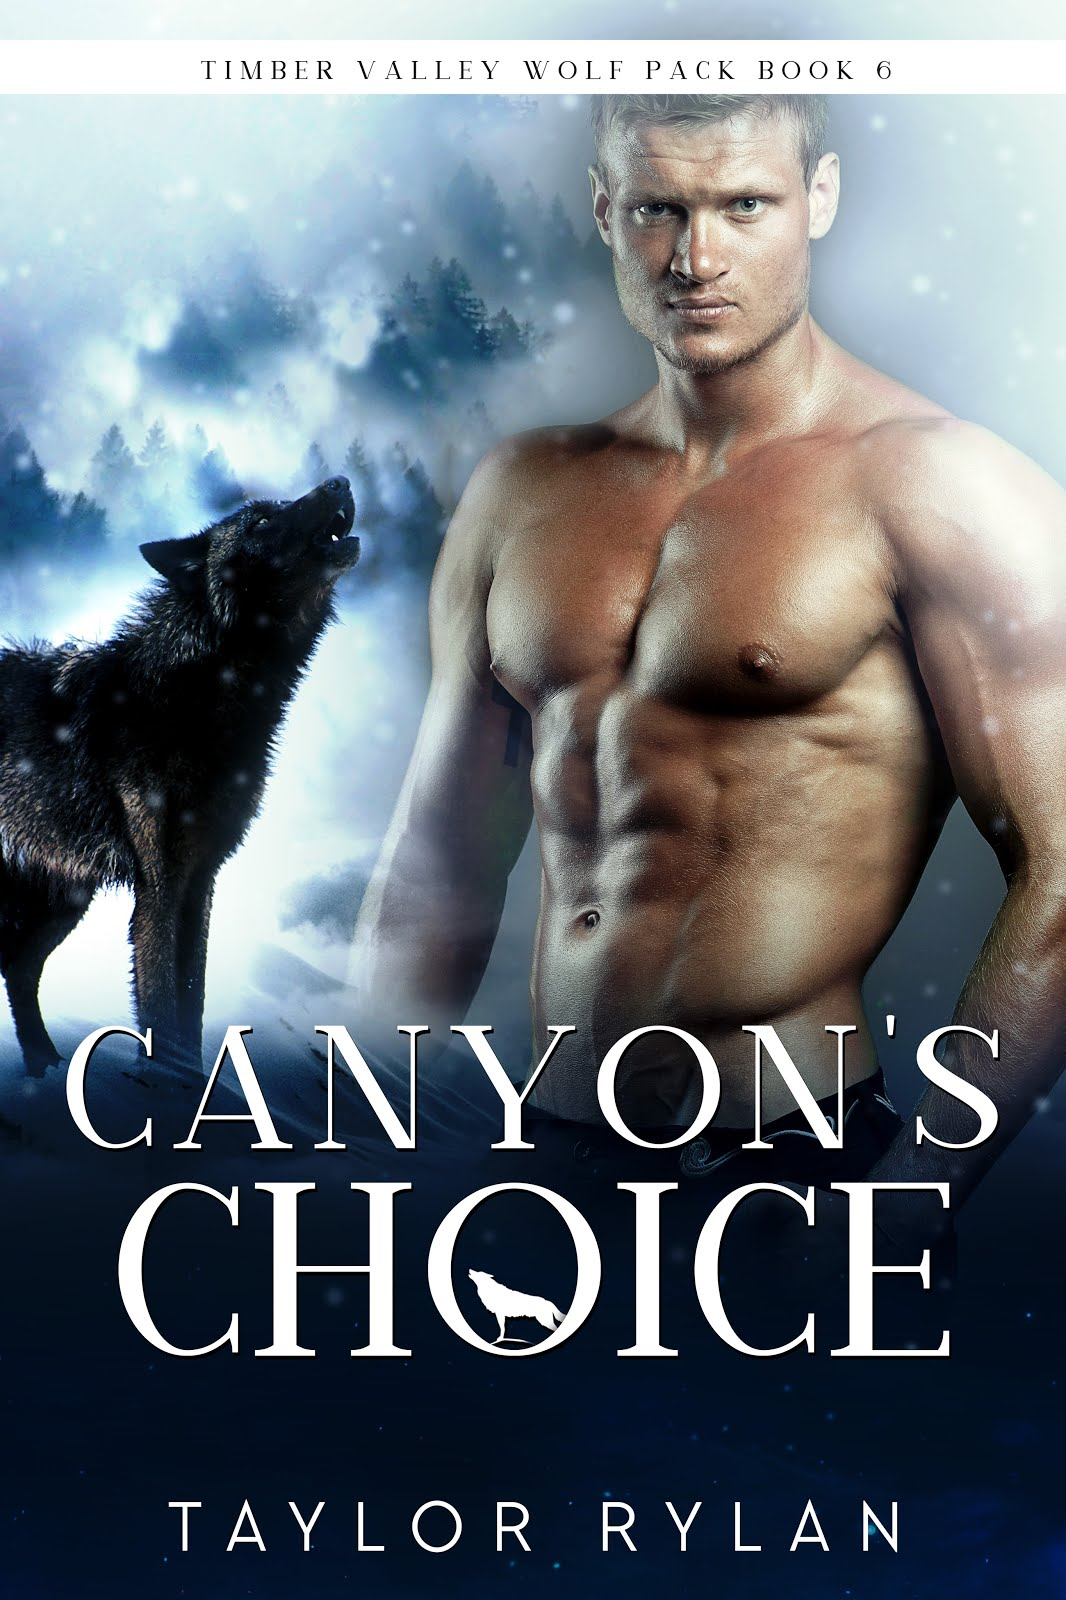 Canyon's Choice by Taylor Rylan